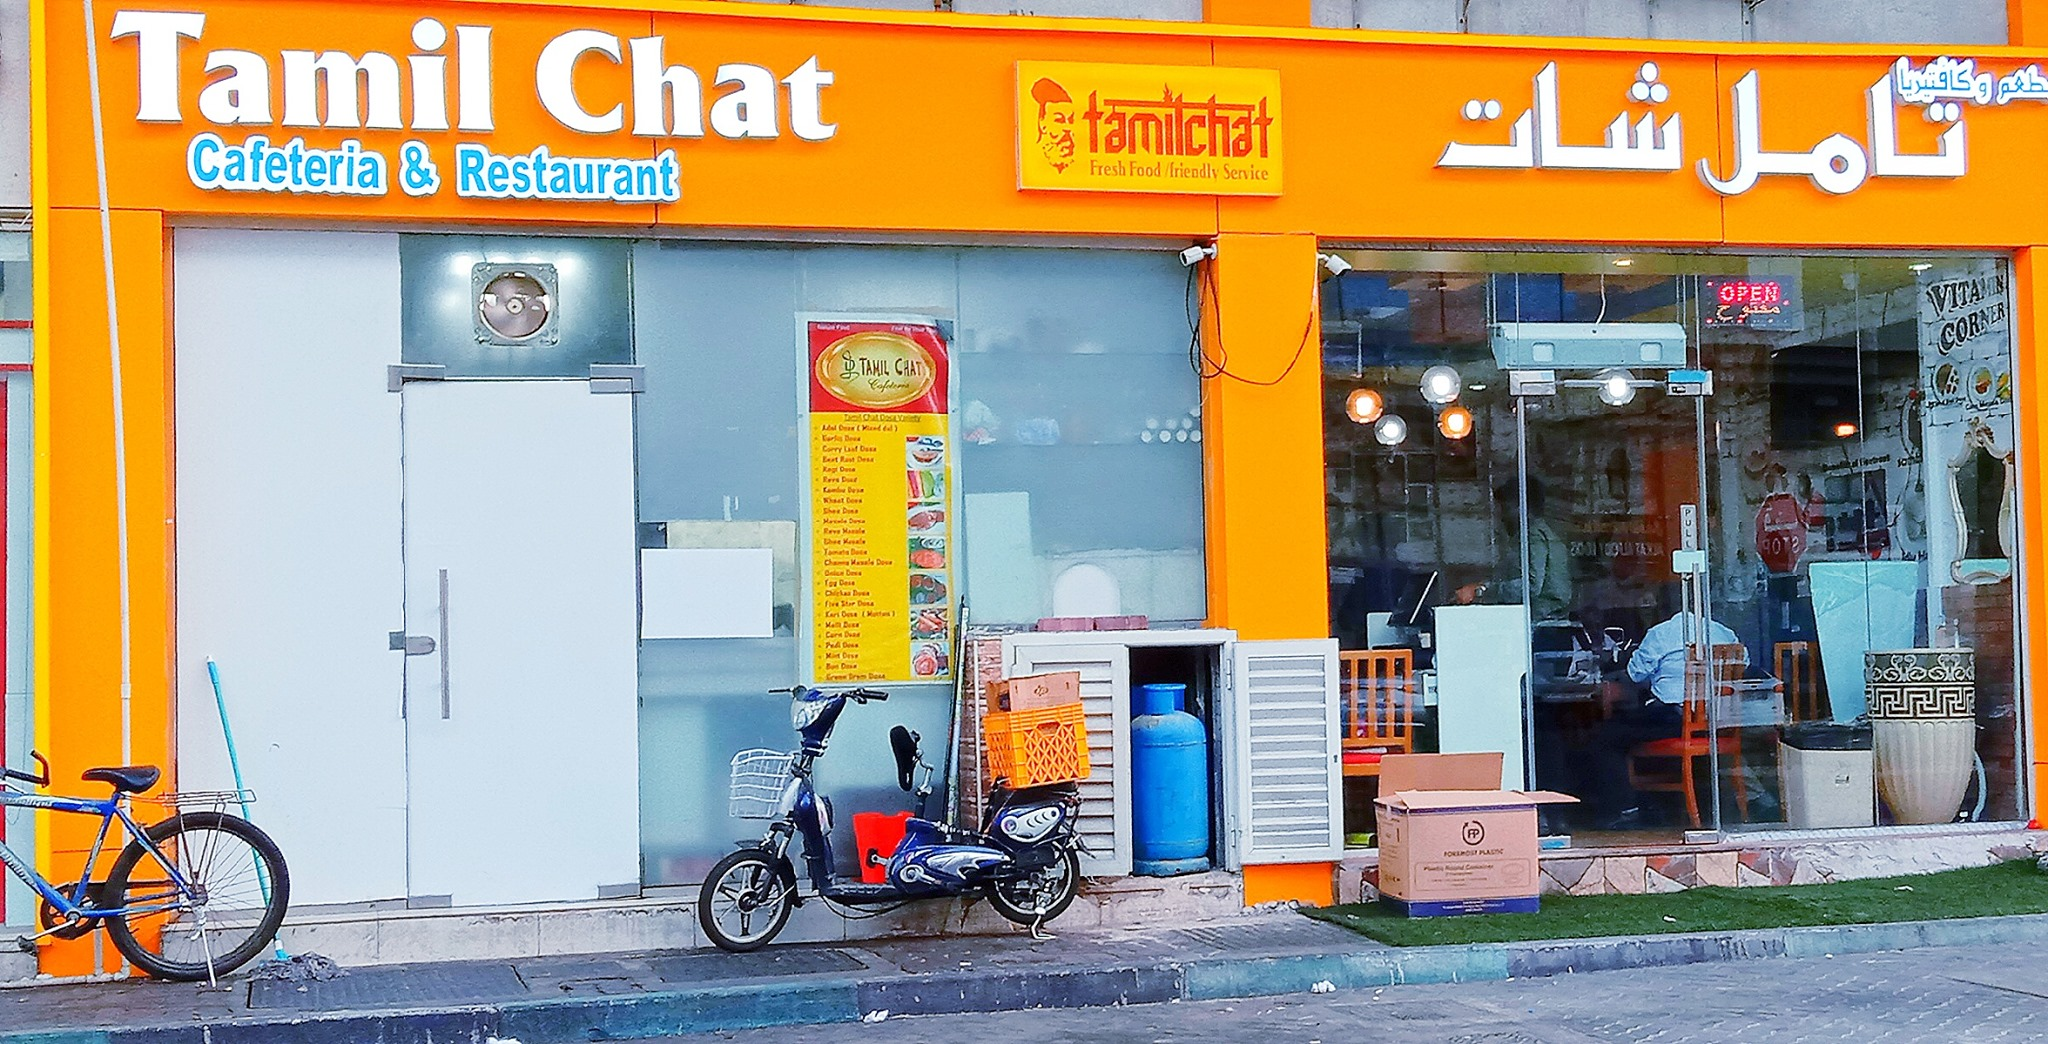 Tamil restaurant and chat in Abu Dhabi and Cafeteria that offer various delicious dishes for workers and foreigners مطعم ودردشة تاميل في أبو ظبي وكافيتيرا يقدم اطباق شهية ومتنوعة للعمال والاجانب